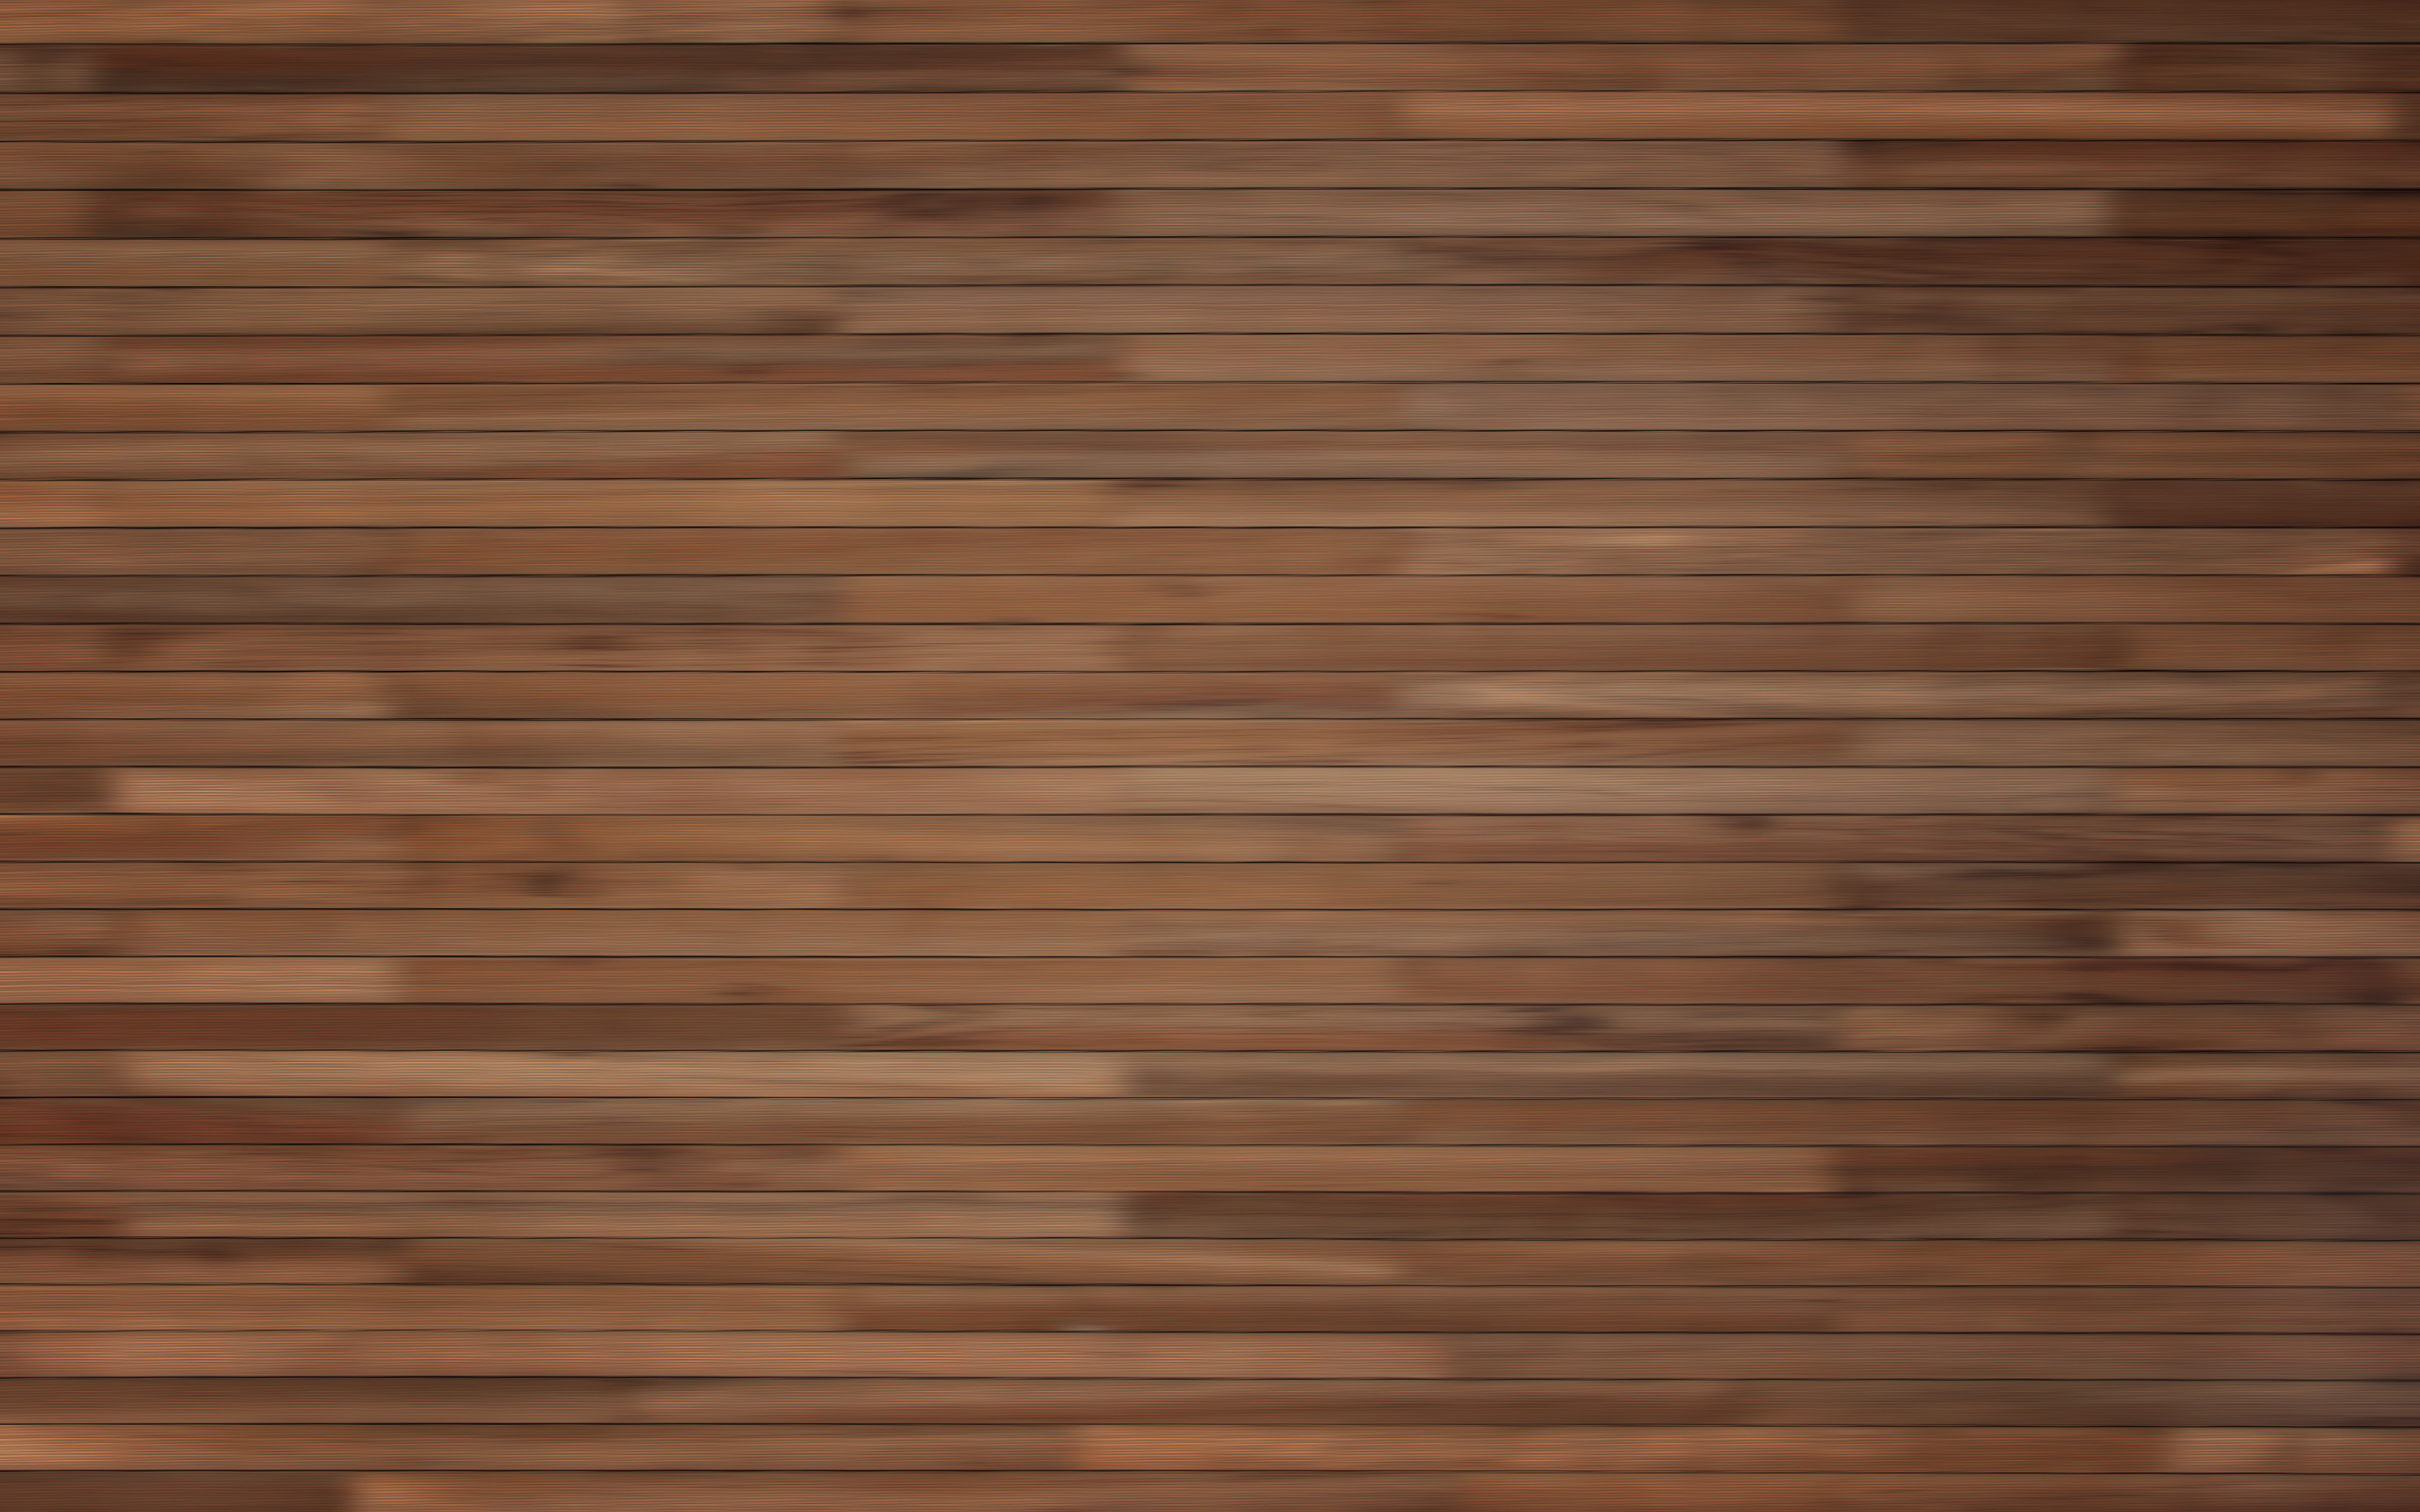 wooden texture, download photo, tree wood, background, texture